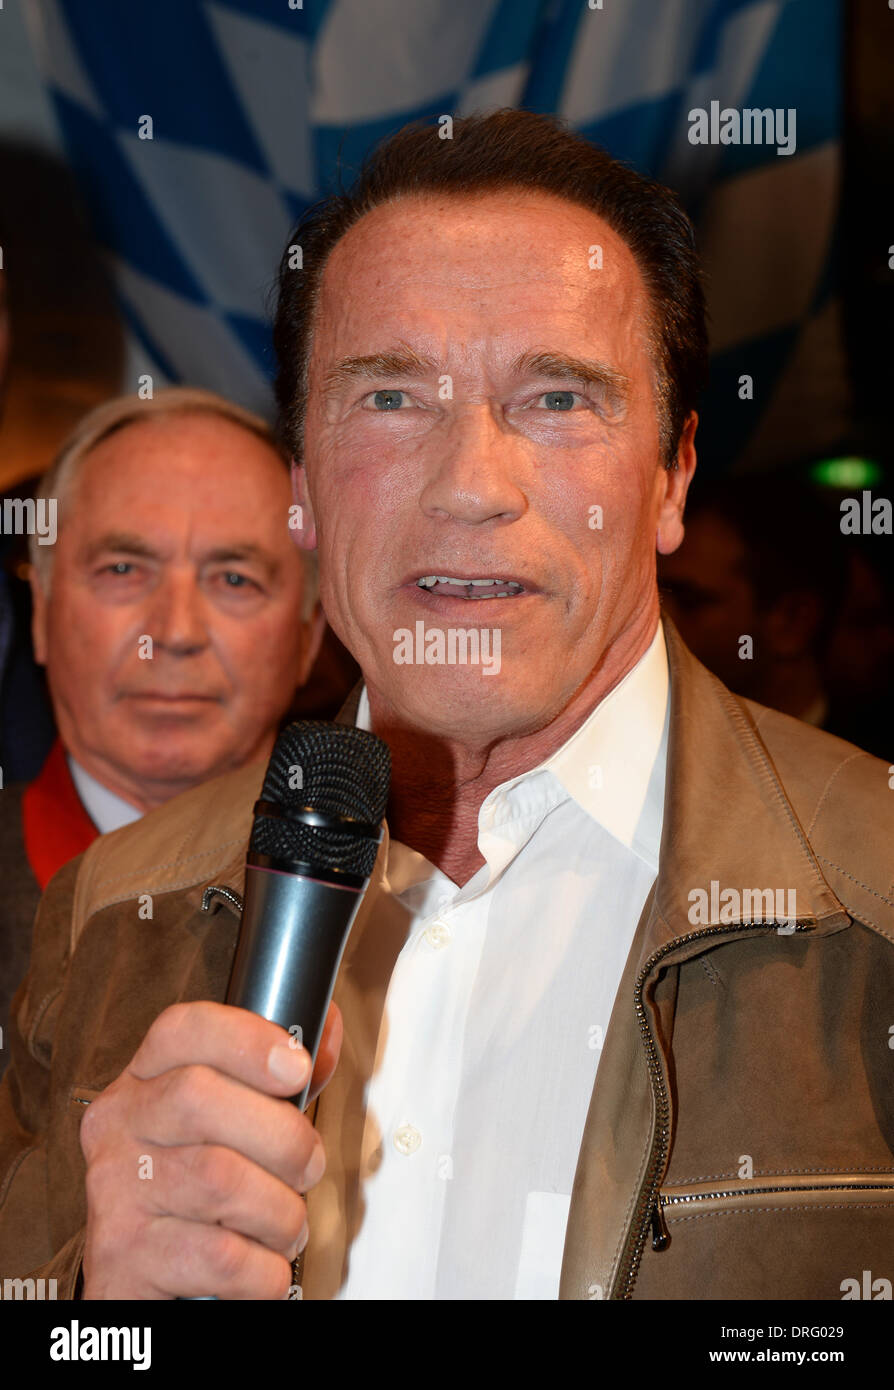 Kitzbuehel, Austria. 24th Jan, 2014. Former US governor and Hollywood actor Arnold Schwarzenegger poses the Bavarian veal sausage party in the Stanglwirt bar near Kitzbuehel, Austria, 24 January 2014. Many celebrities came for the annual Austrian downhill ski race Hahnenkamm race in worldfamous skiing location. Photo: Felix Hoerhager/dpa/Alamy Live News - Stock Image